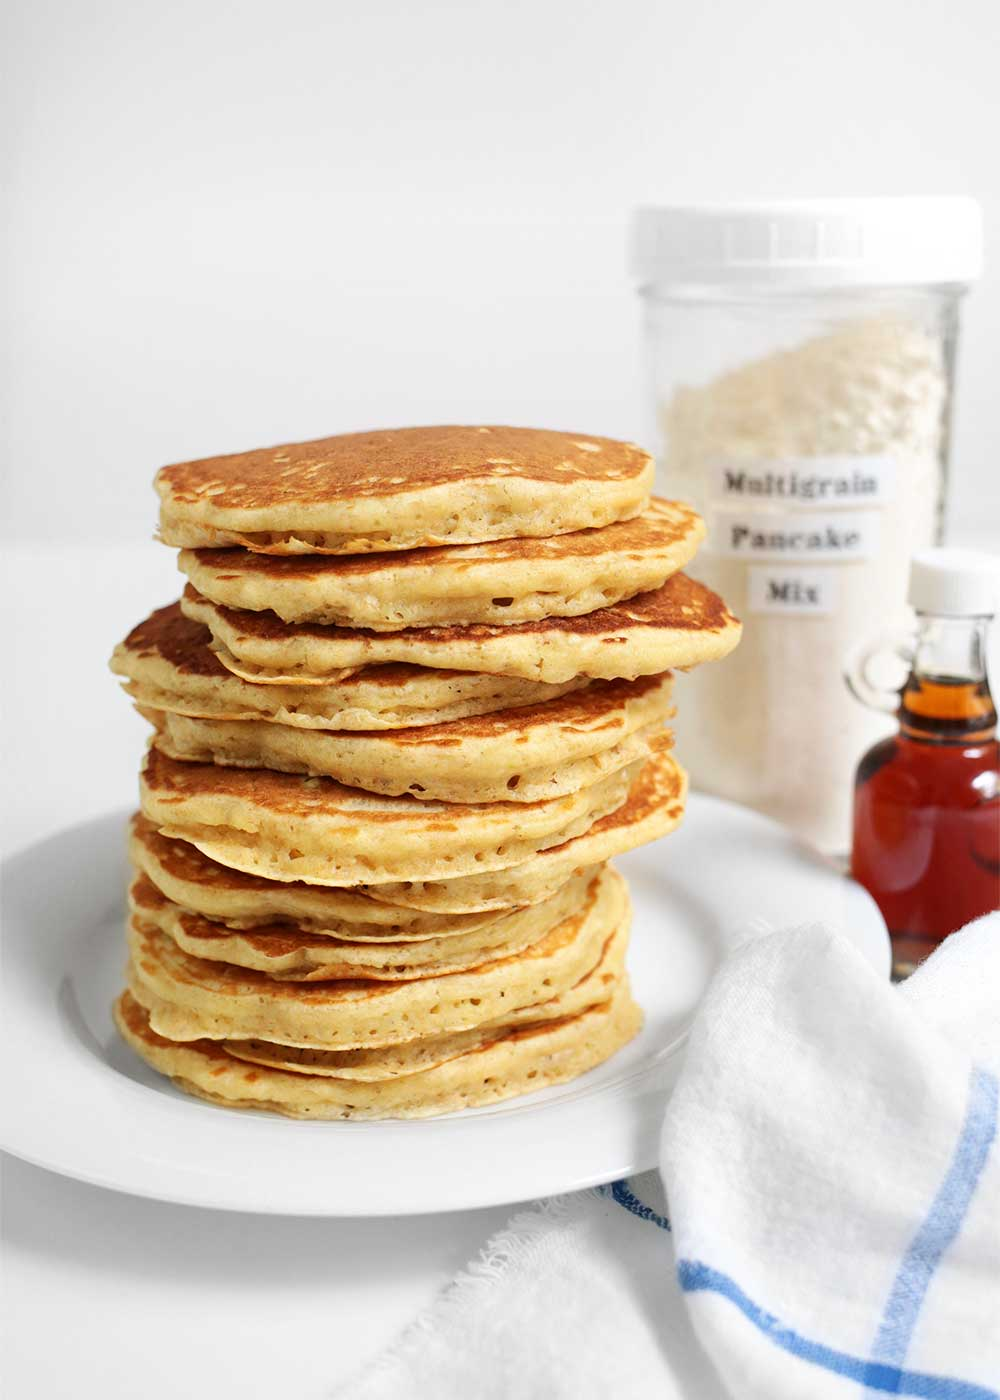 stack of Fluffy Multigrain Pancake mix from the faux martha